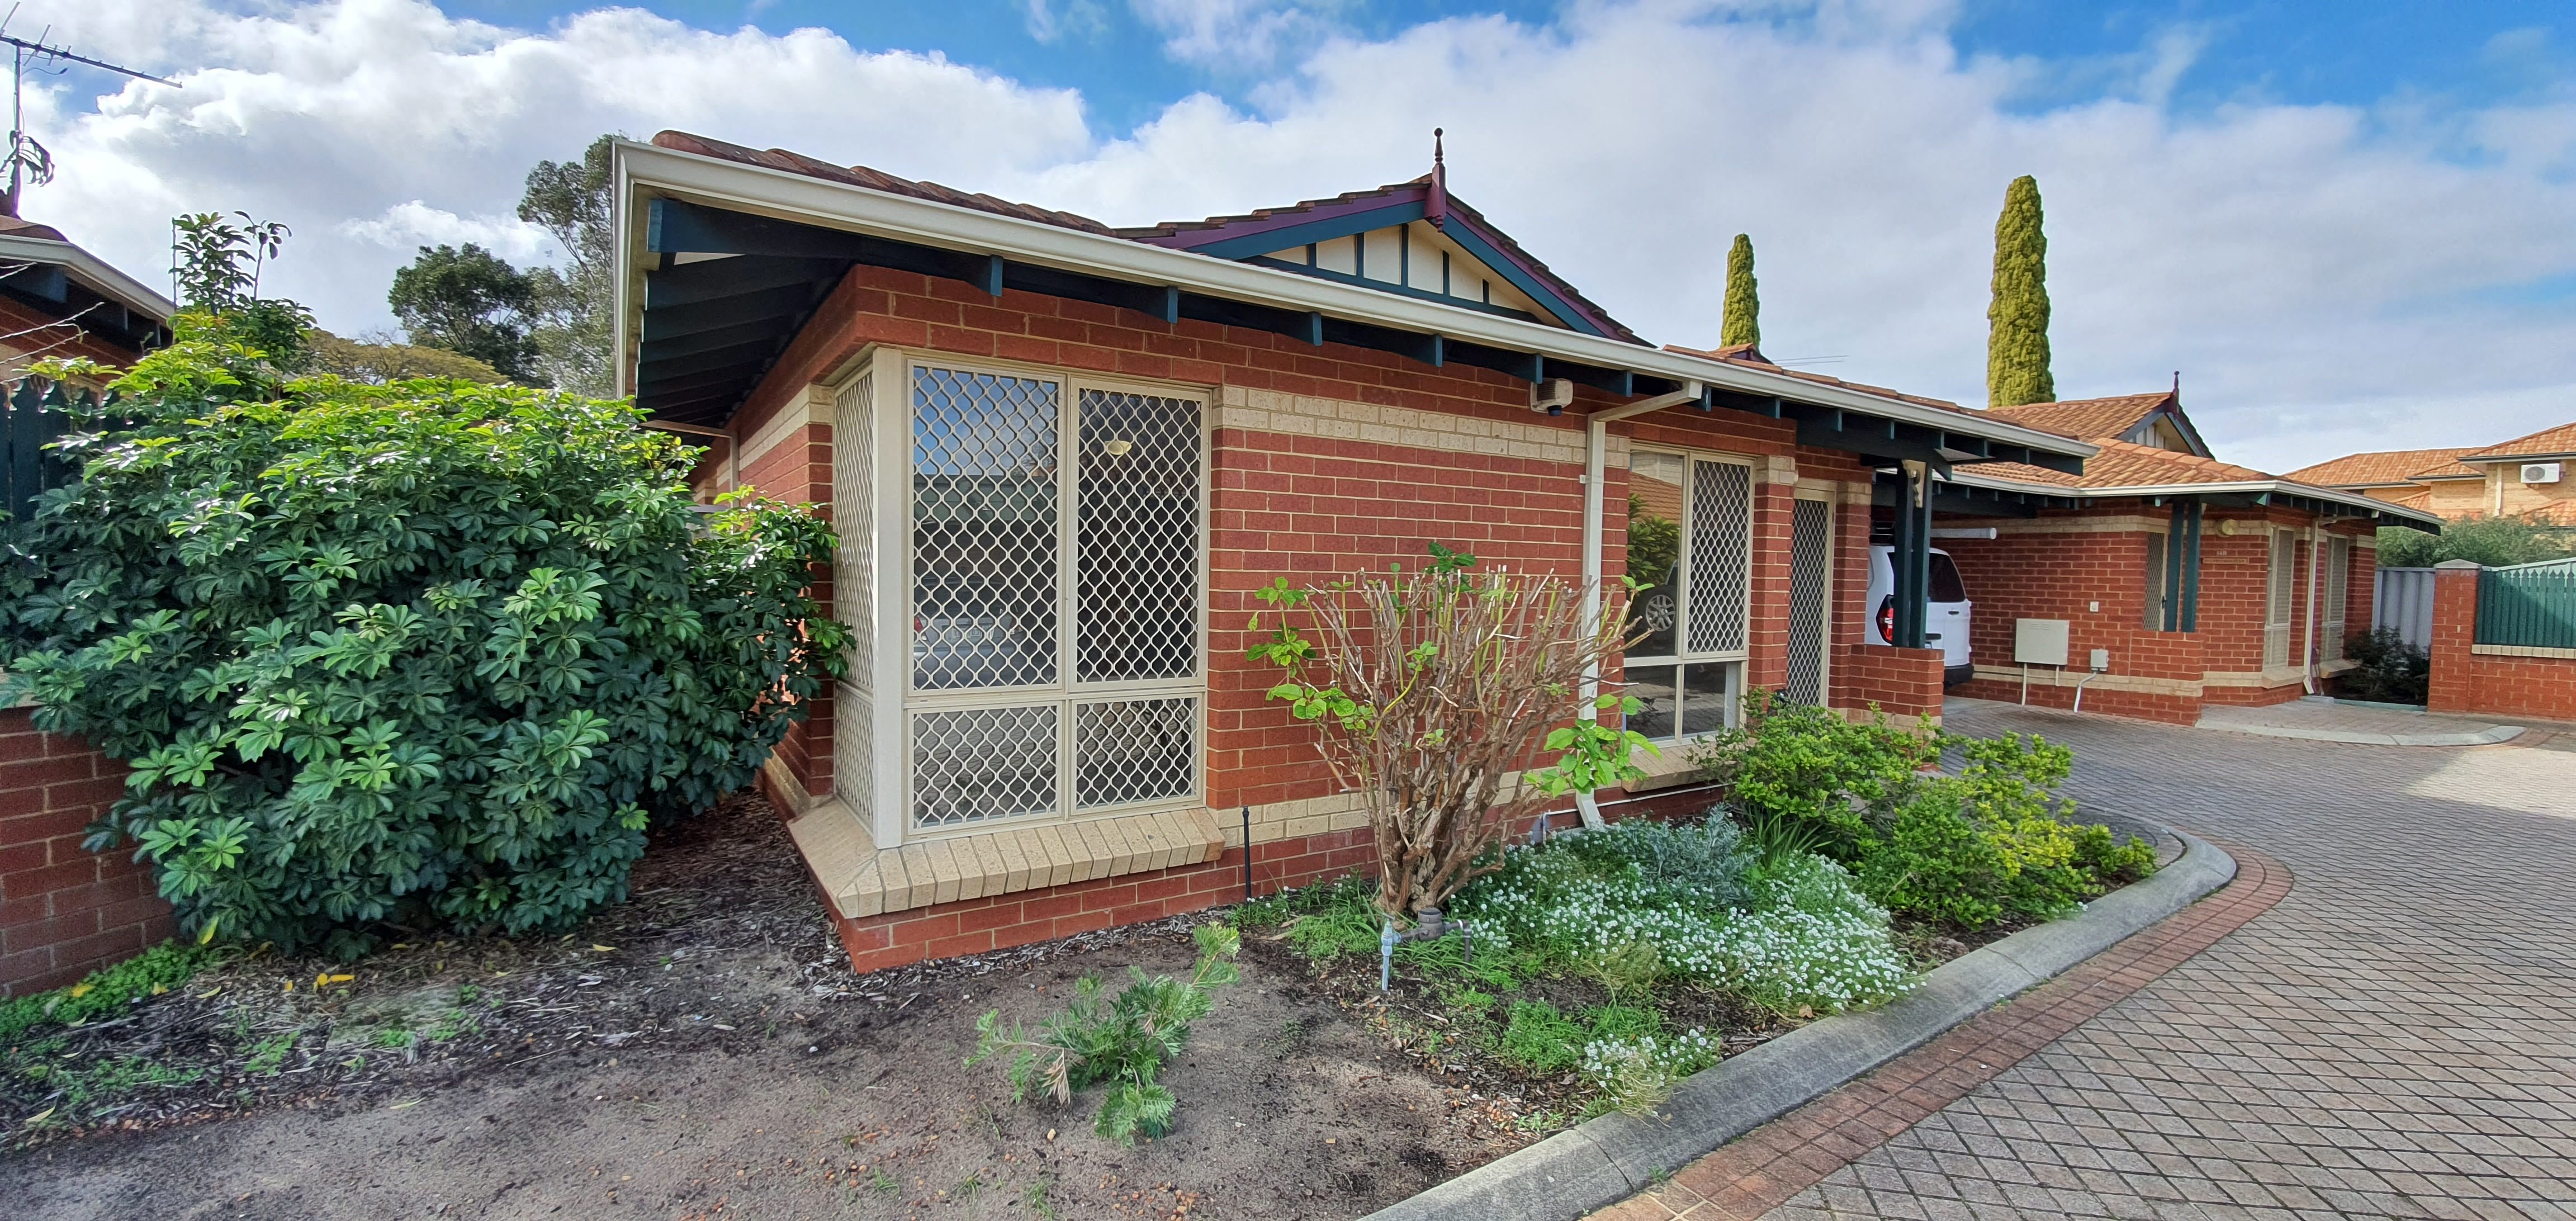 New Listing! 14A Francisco Street – Rivervale